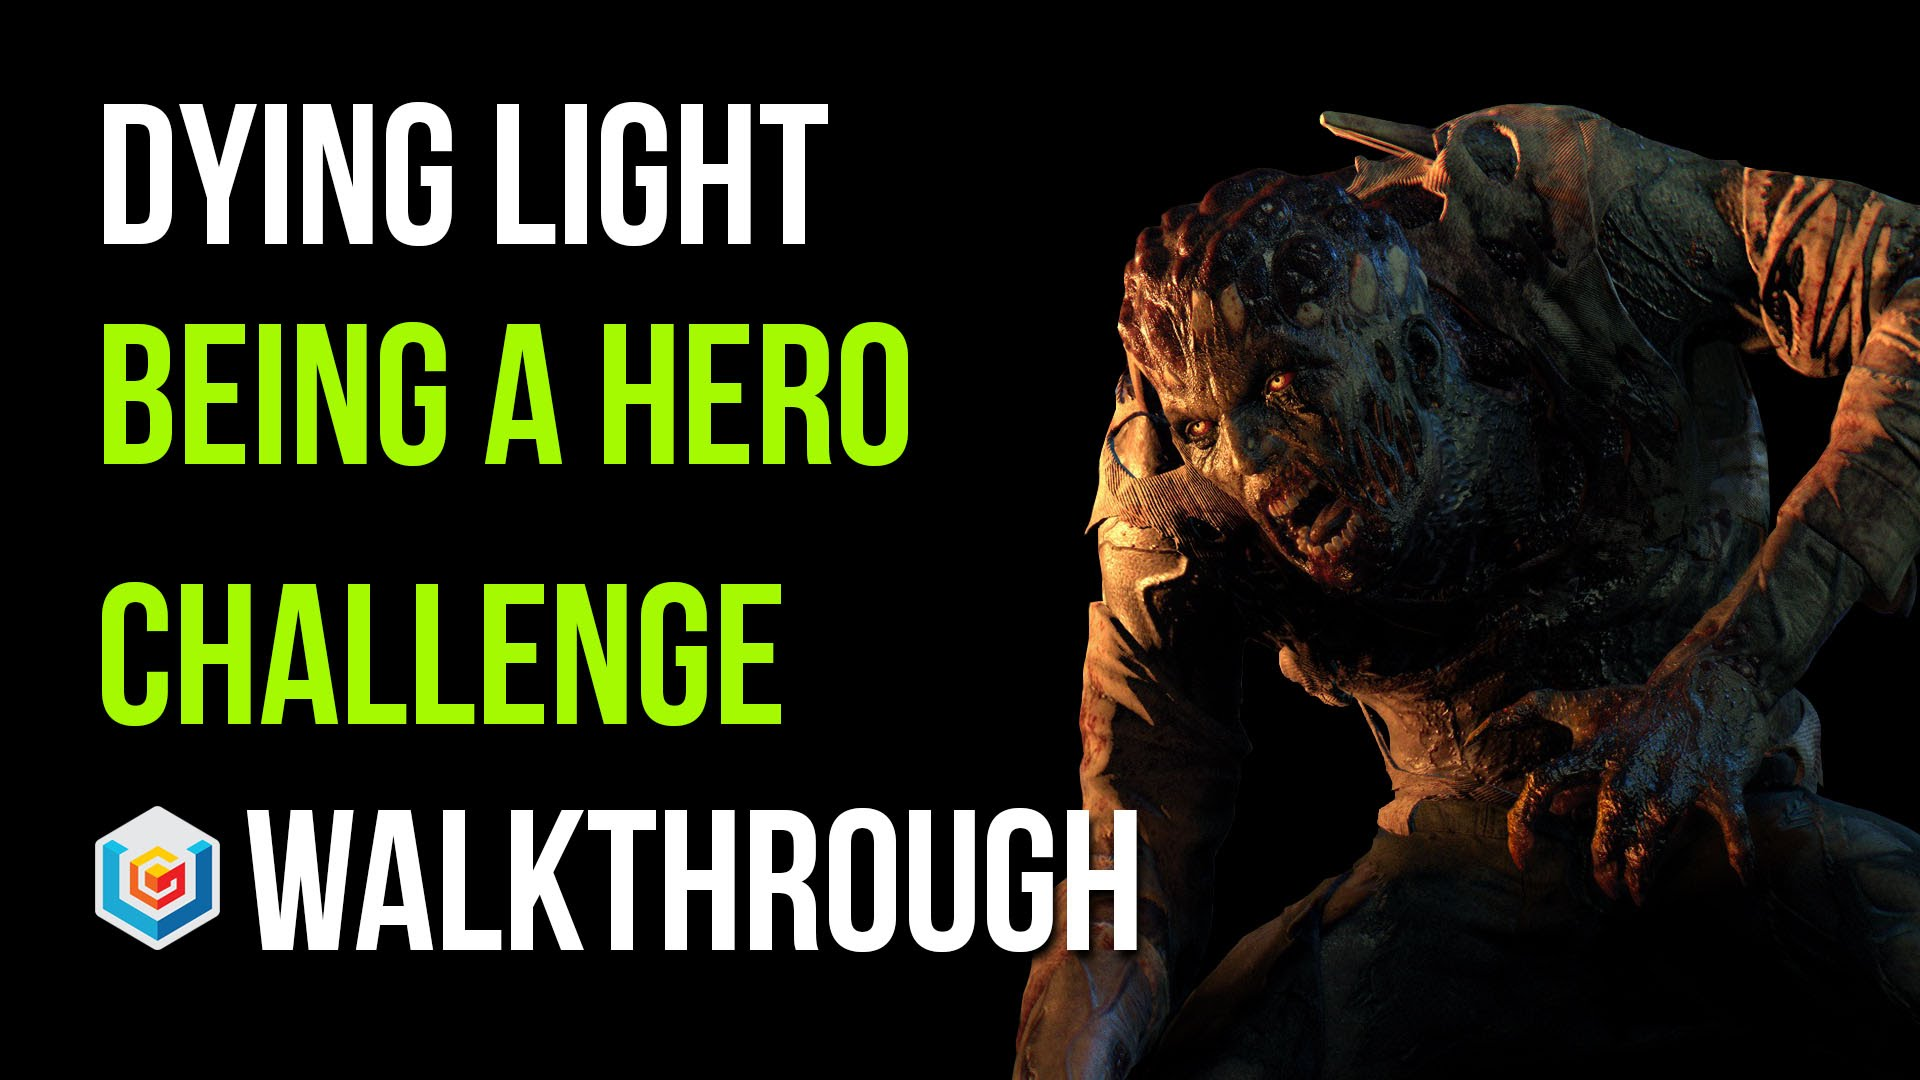 Dying Light Being a Hero Walkthrough - Video Games, Wikis, Cheats